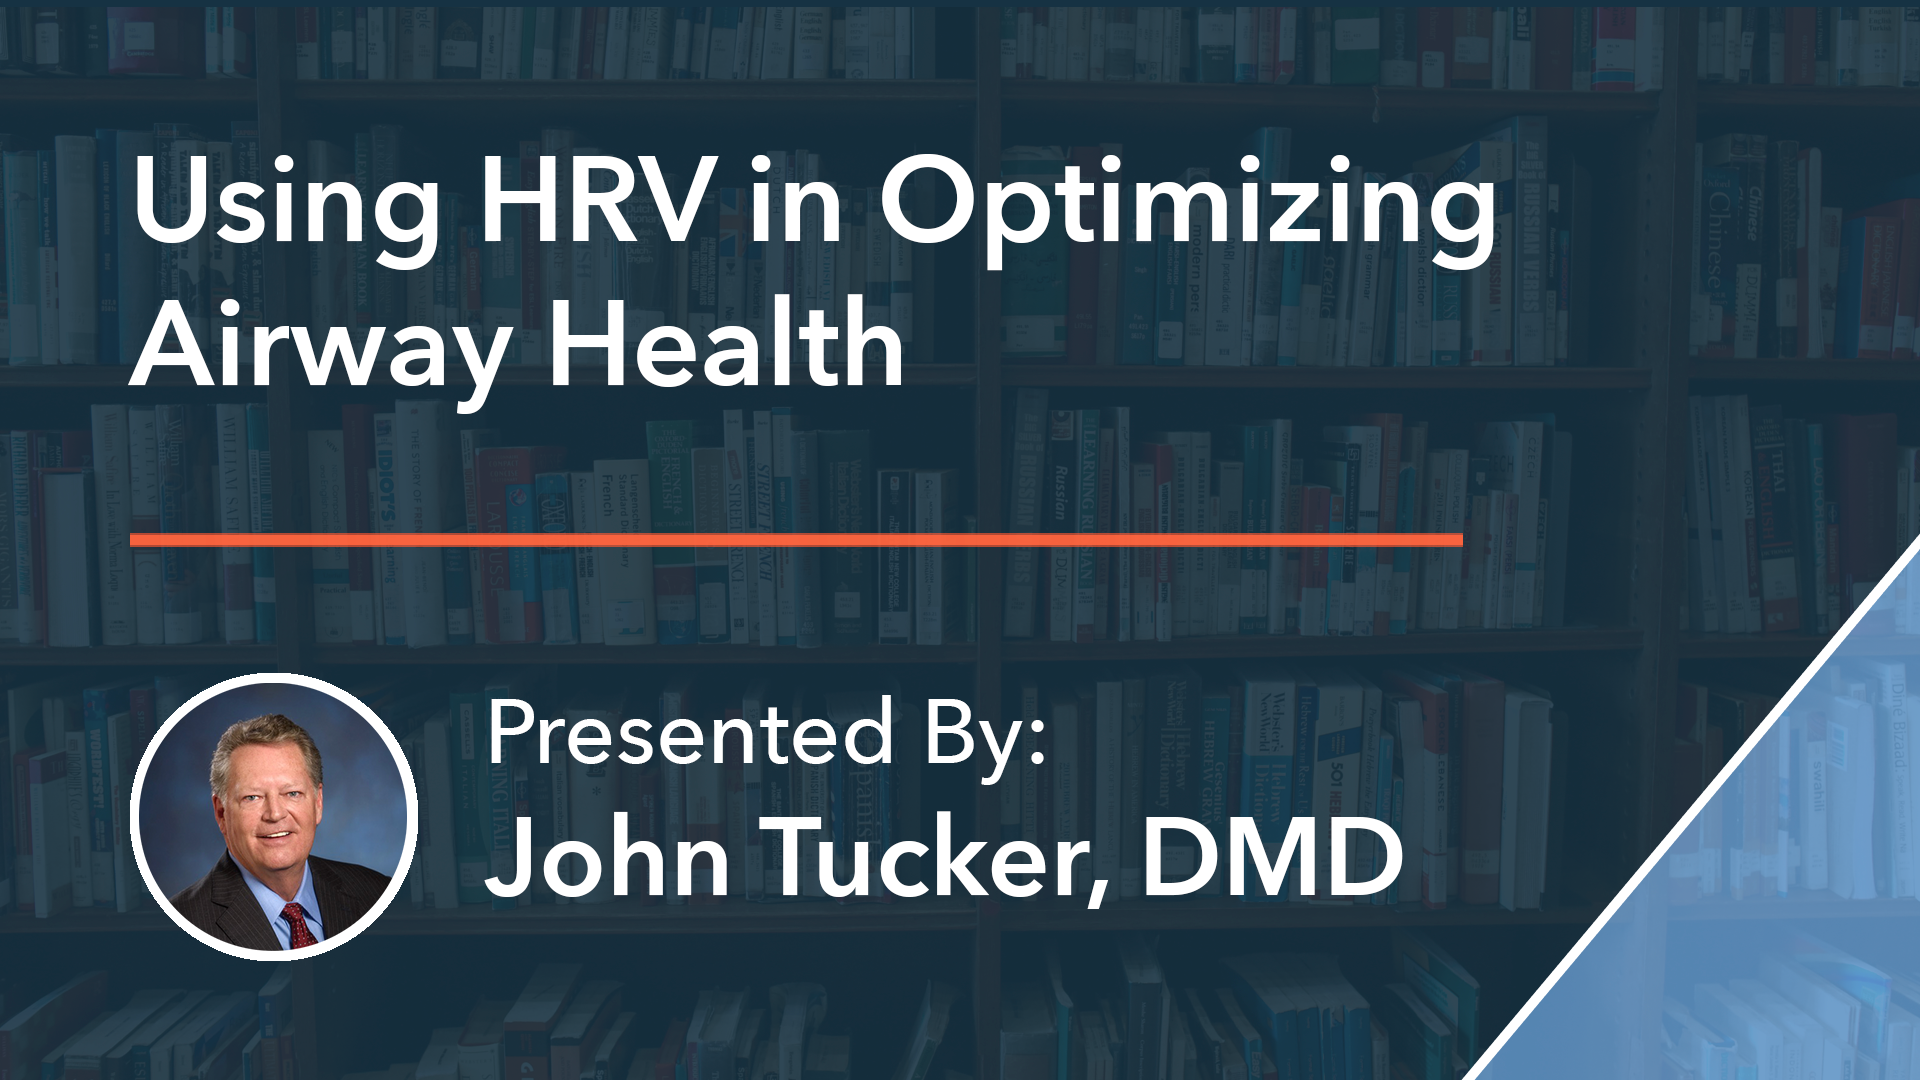 Using HRV in Optimizing Airway Health Dr John Tucker